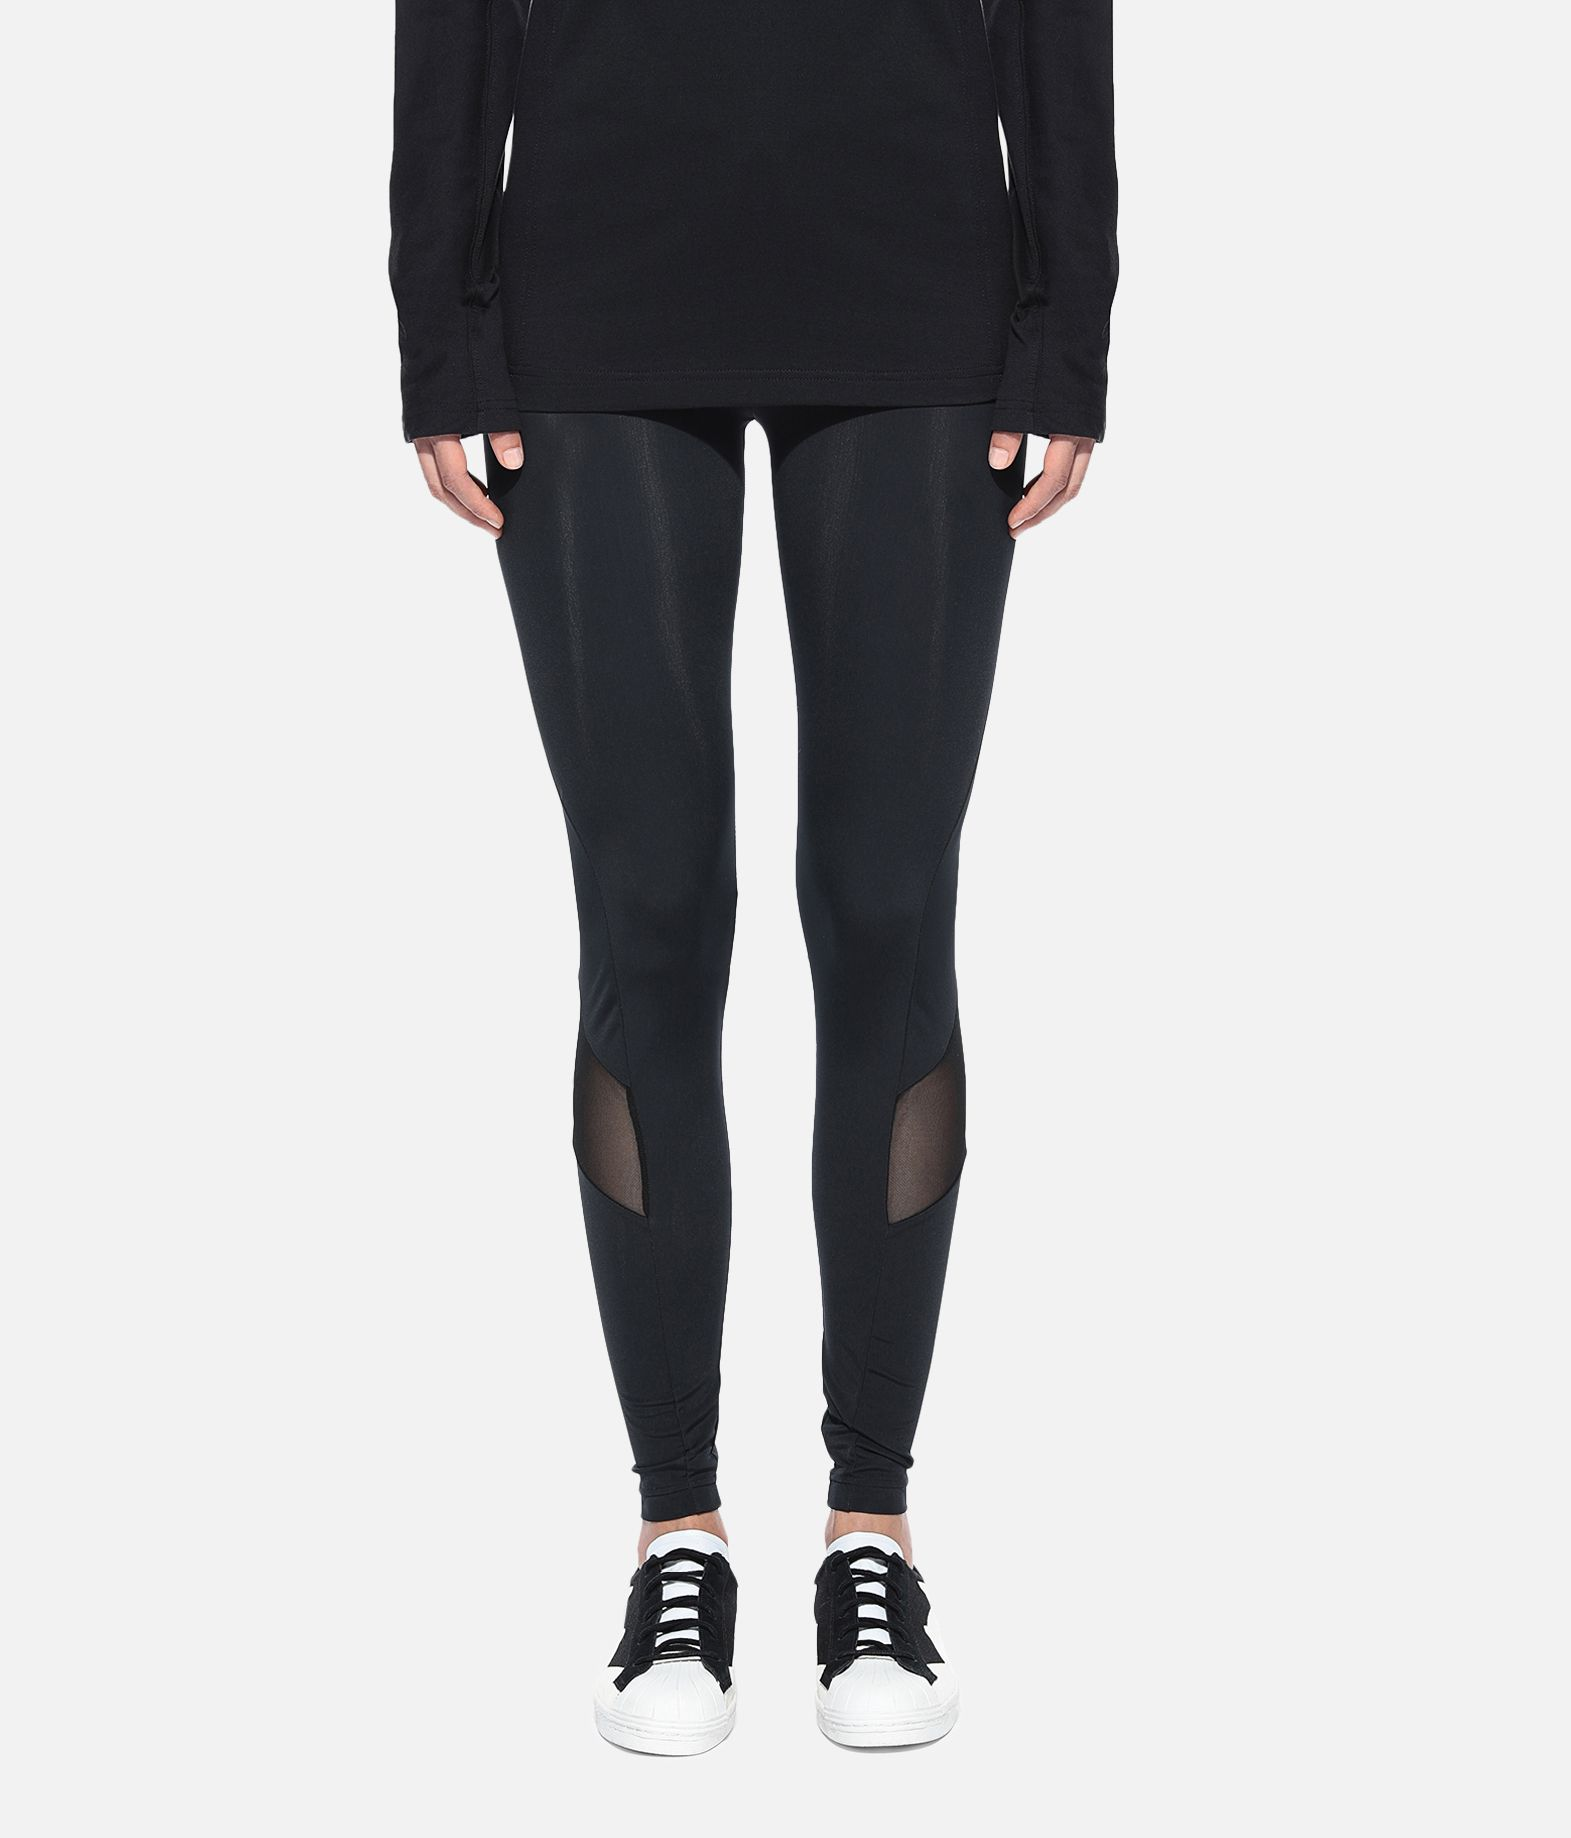 Y-3 Y-3 New Classic Tights Leggings Donna r